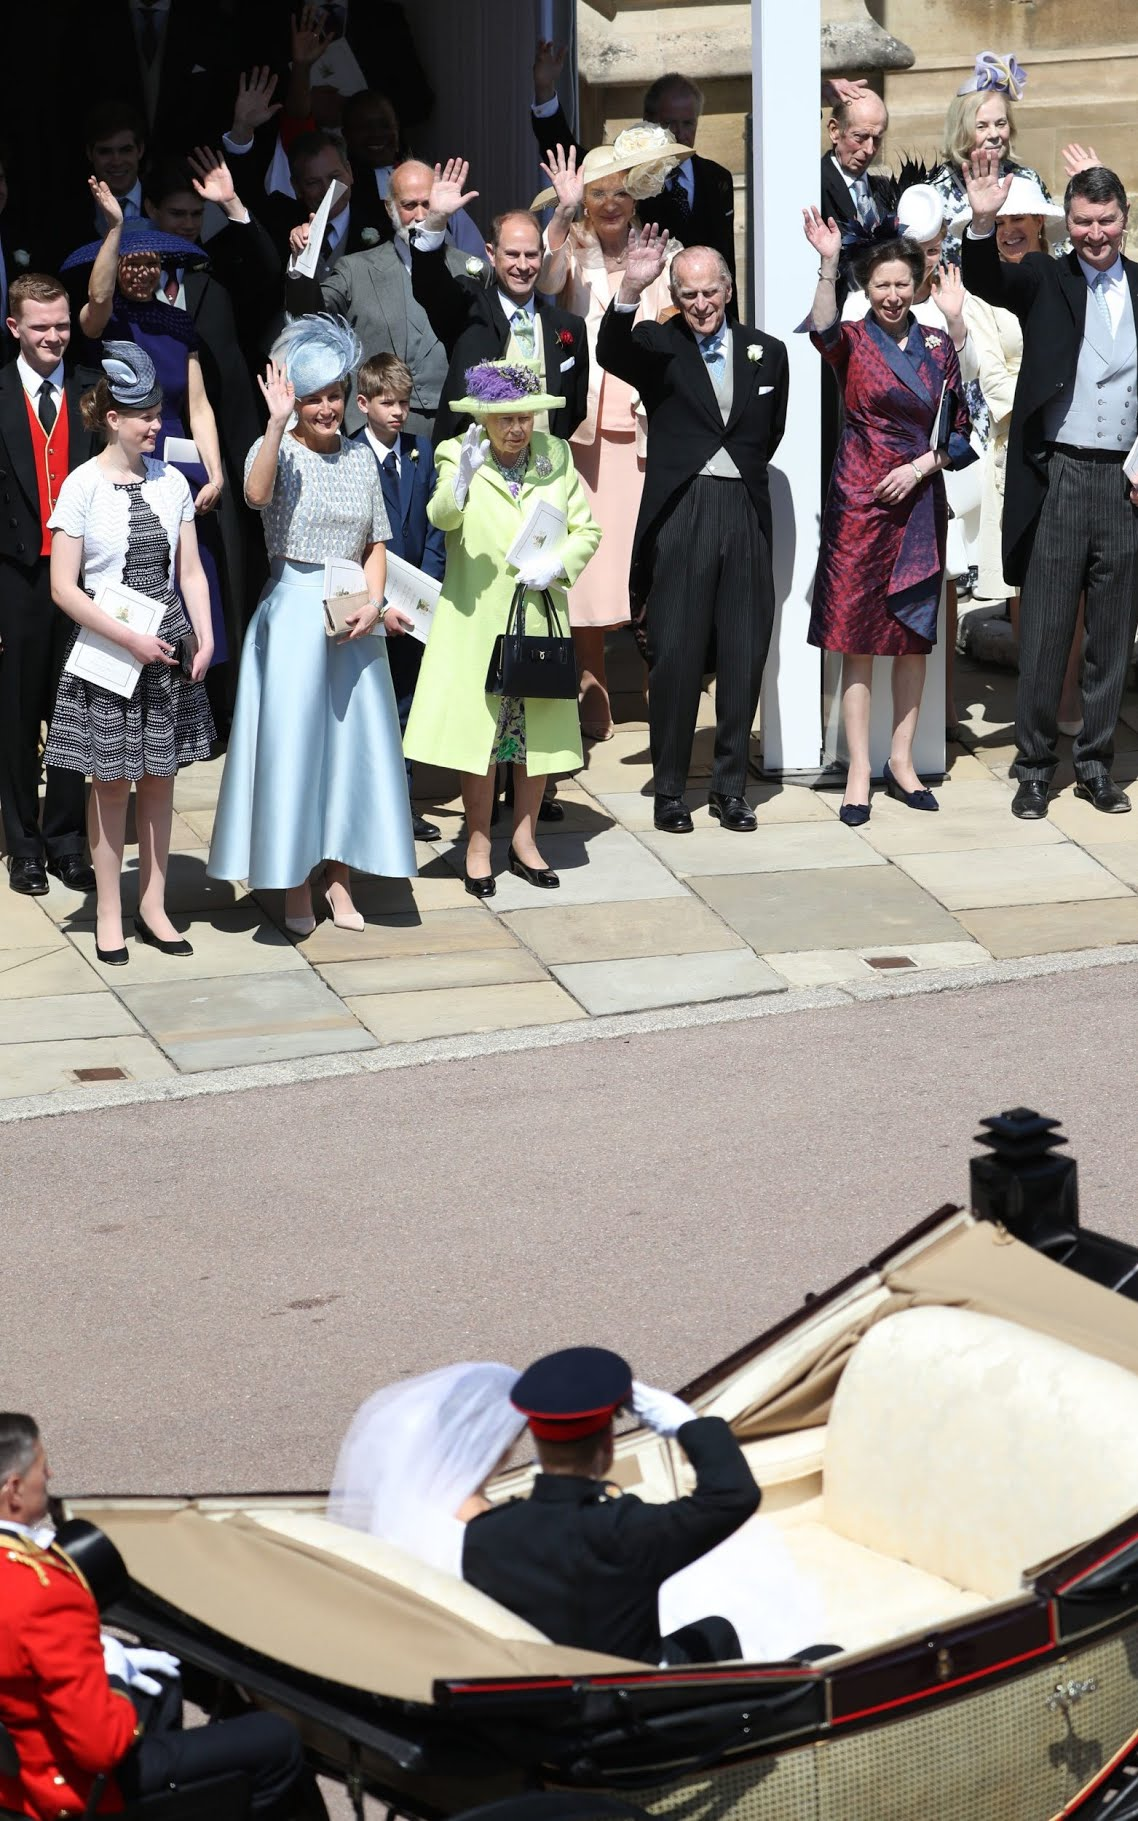 Prince Harry salutes members of the Royal family